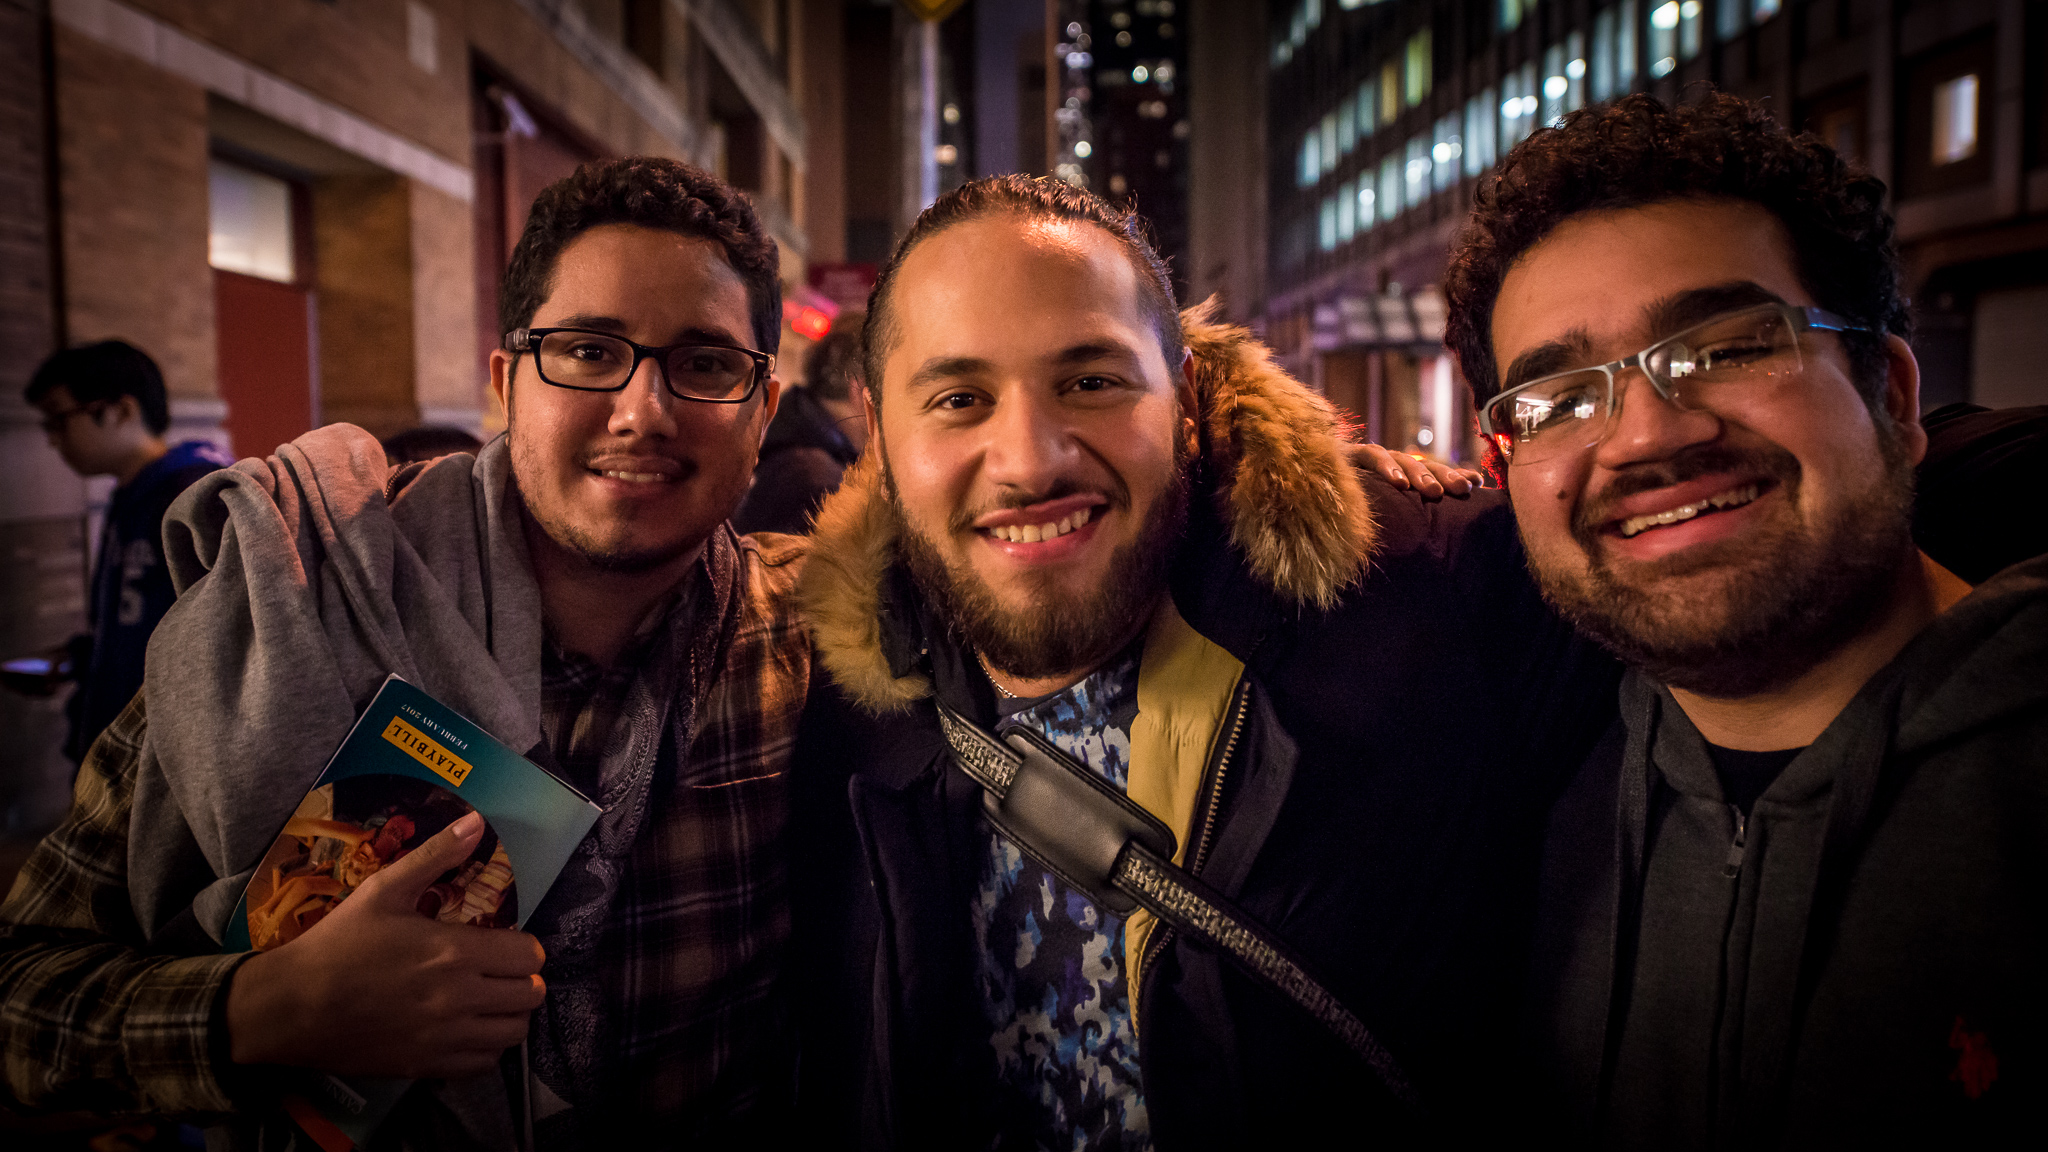 The concert was attended by illustrious alumnus from the Berkshire Summer Music Festival; Gabriel Josué Suárez Rivera, Raul Rios, and Nayib Yadiel González.